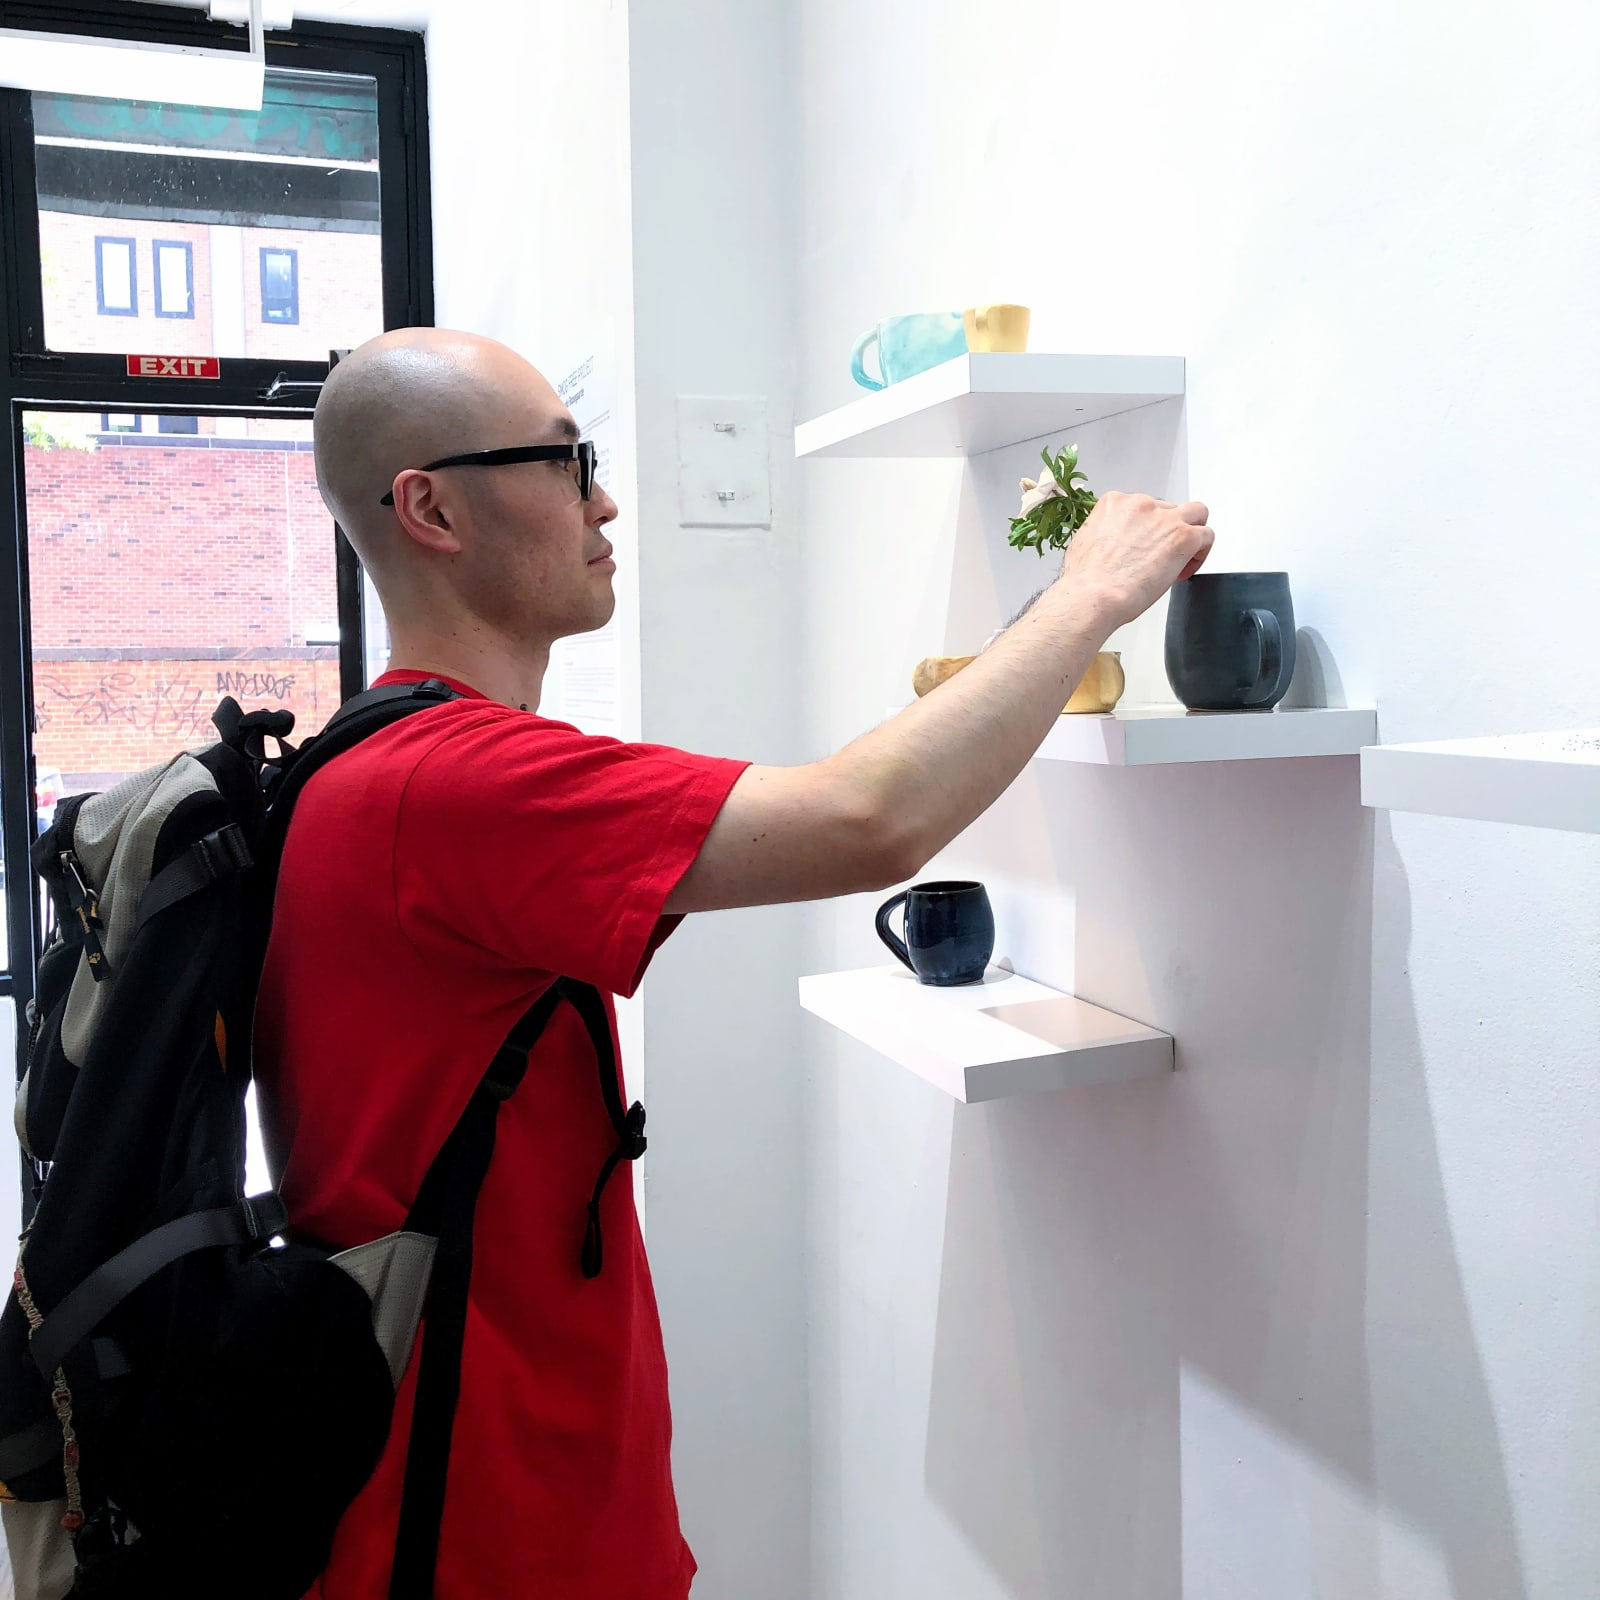 A gallery visitor interacting with Si Jie Loo's installation